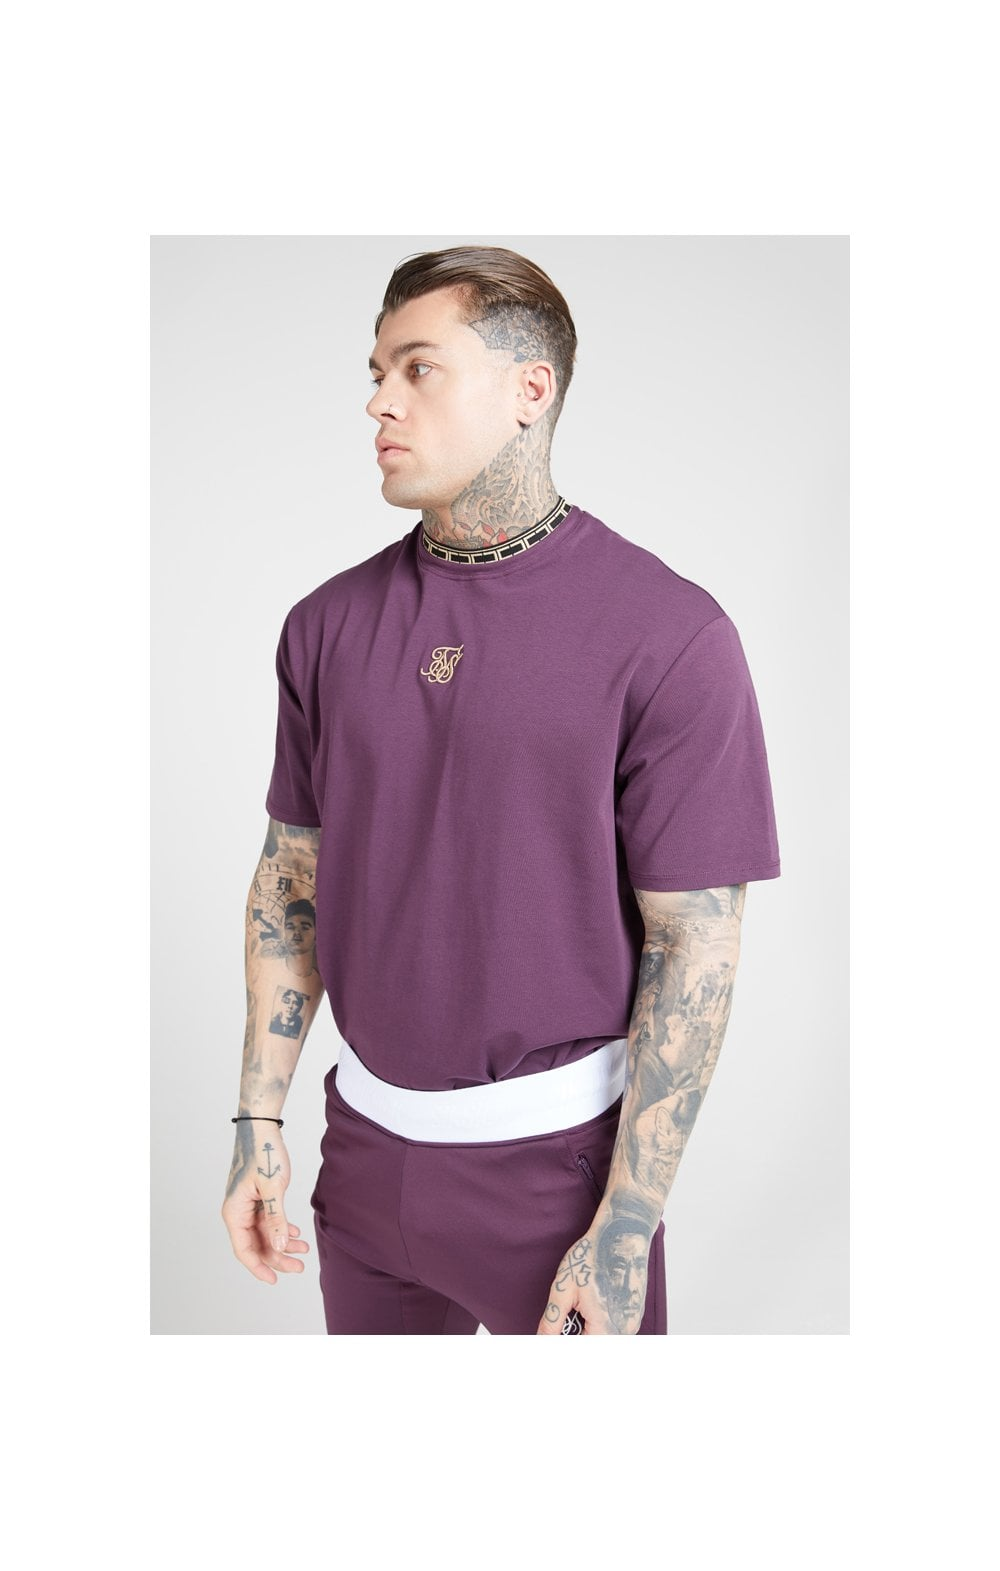 Load image into Gallery viewer, SikSilk Tape Collar Essential Tee - Burgundy & Gold (1)